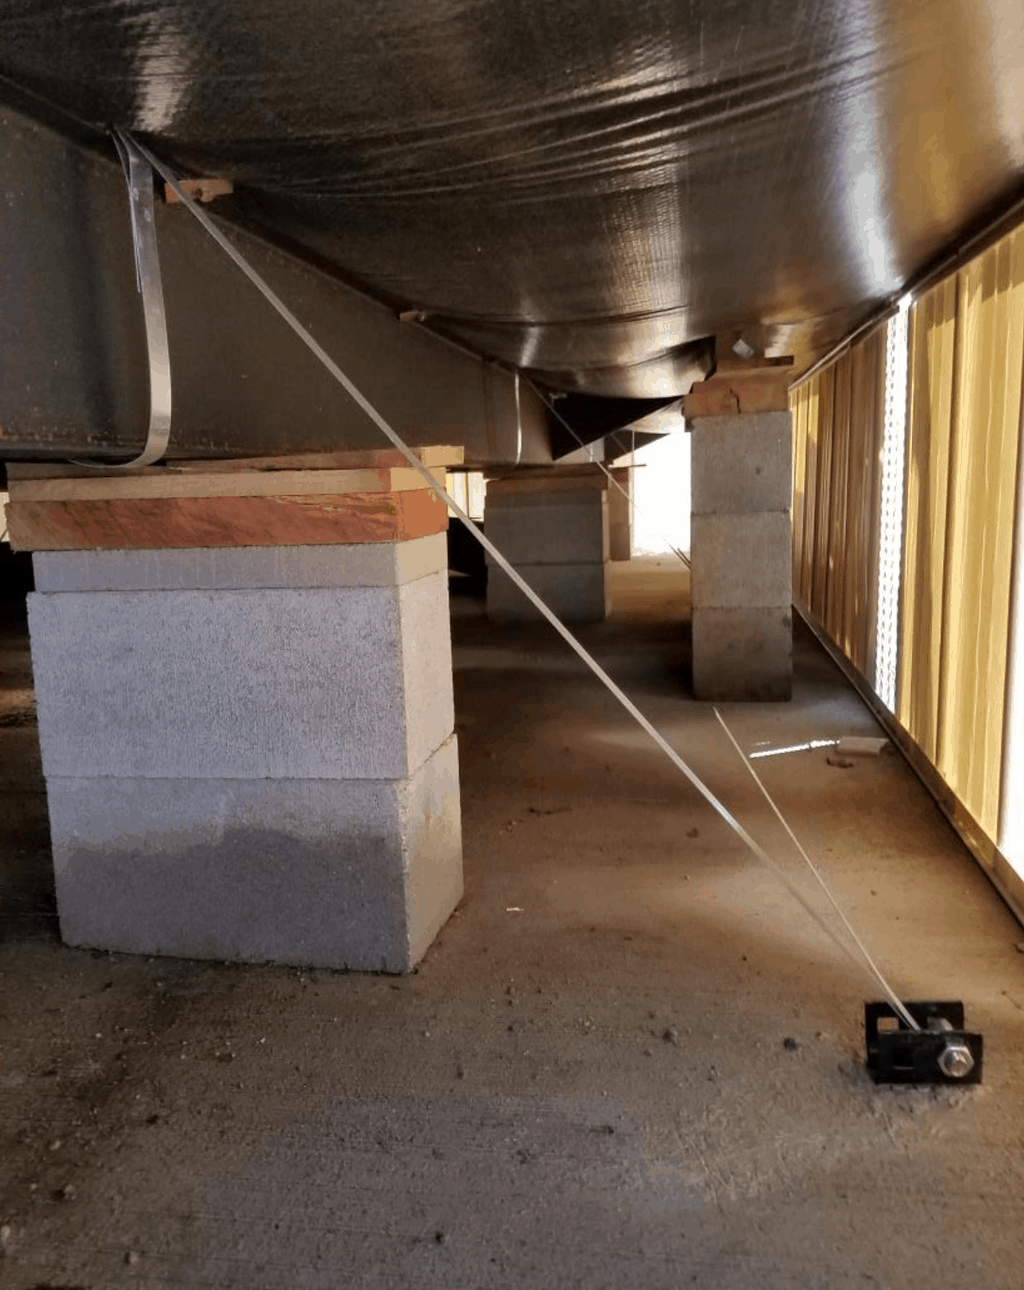 Underbelly And Blocks Under A New Manufactured Home With Tie Downs